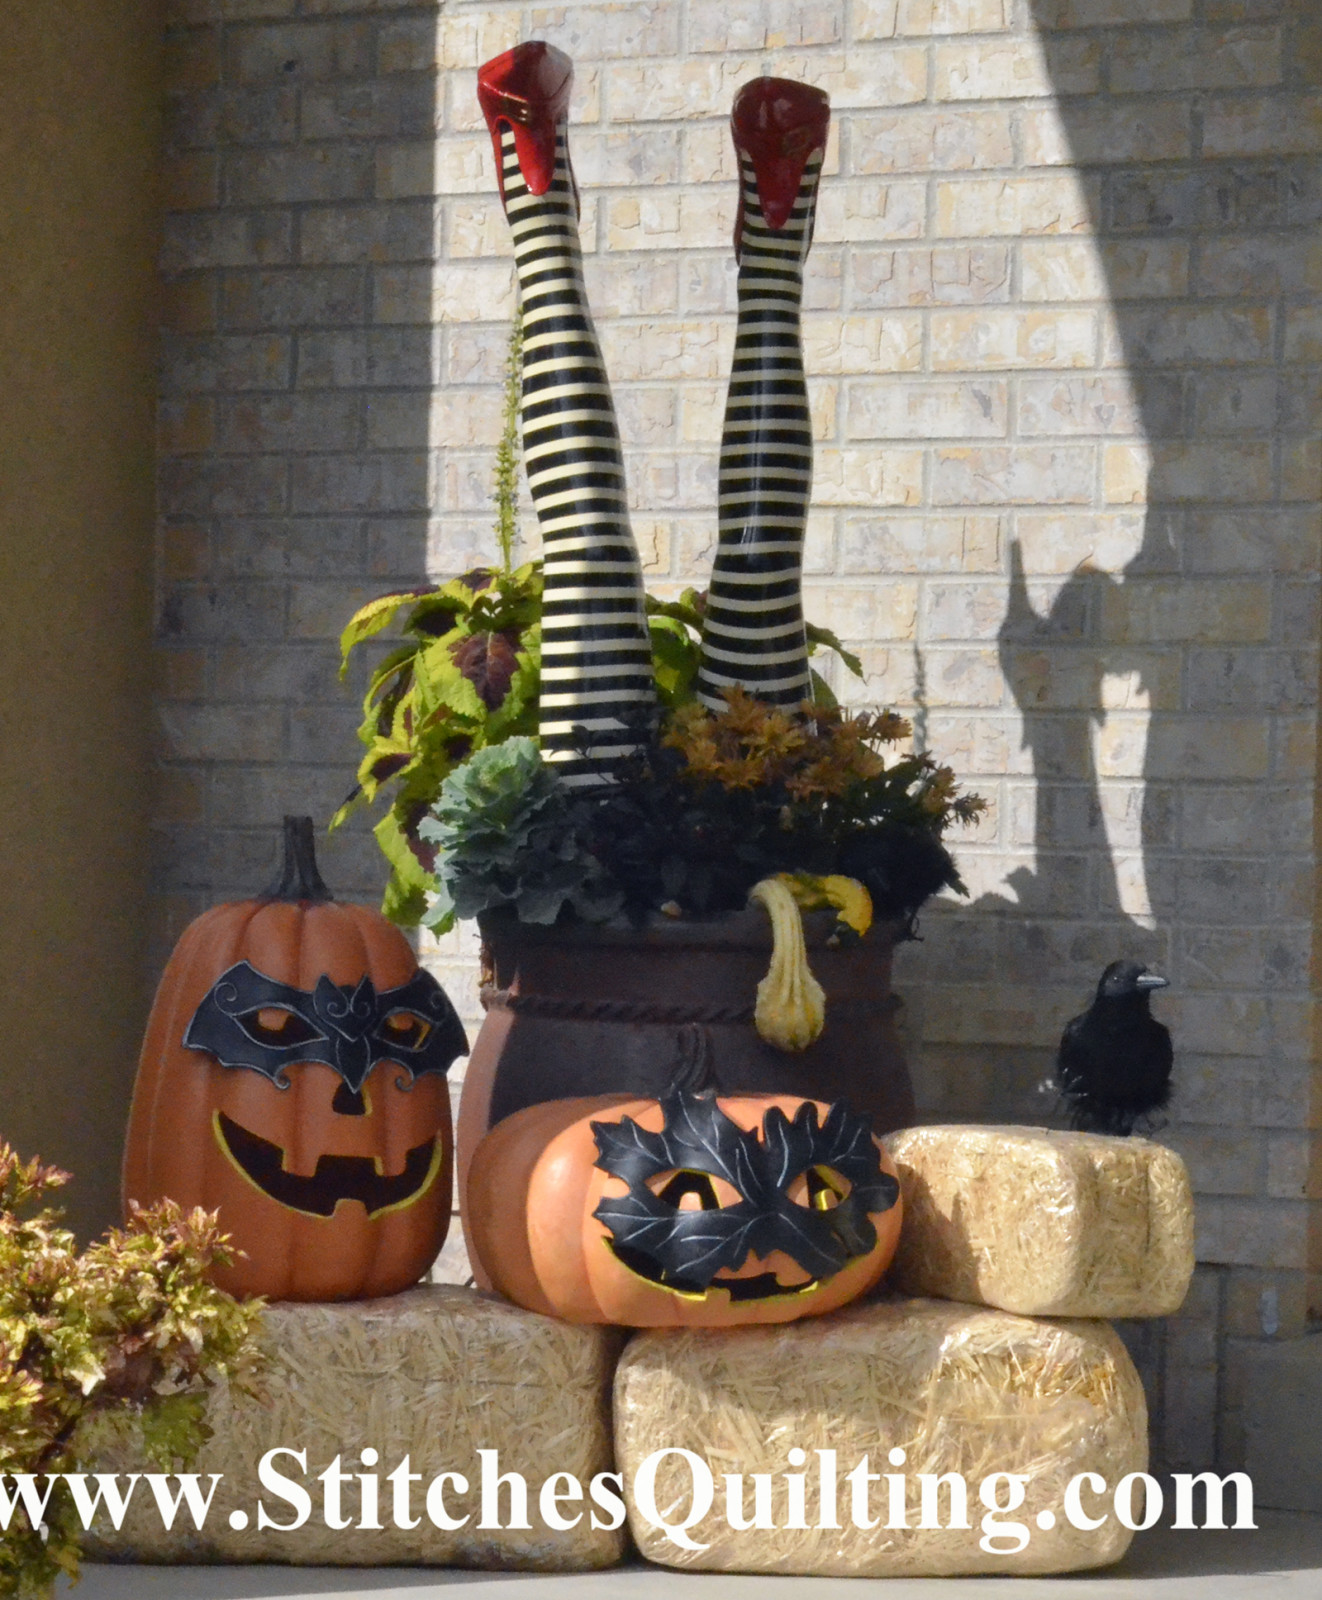 Here are some great ideas for outdoor FUN! What could be more fun than a witch's legs upside down?